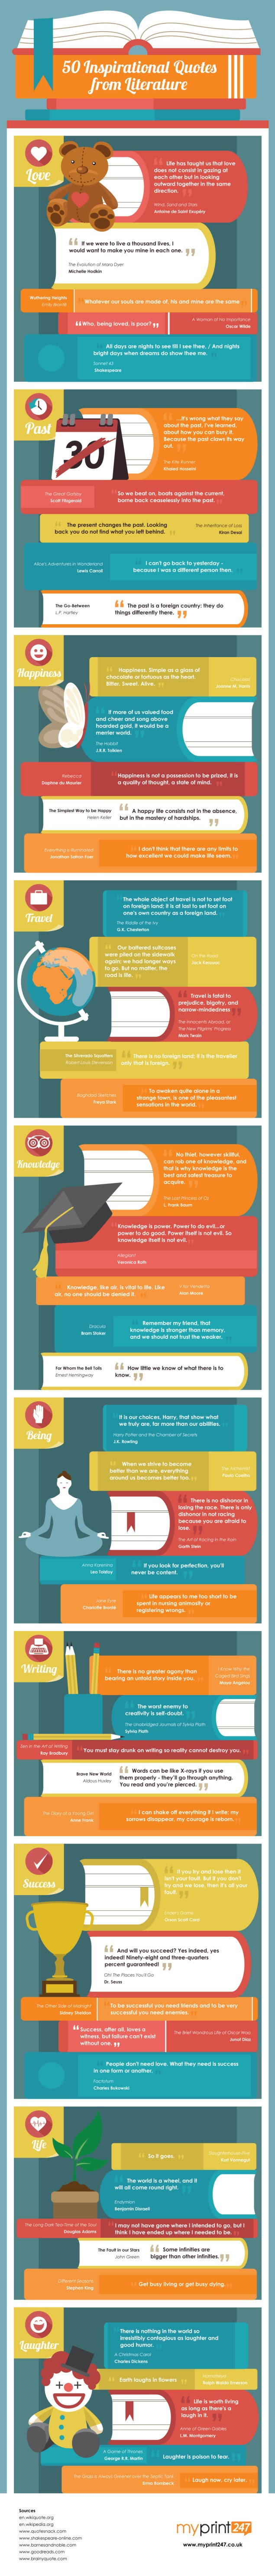 50 Superb Inspirational Quotes From Literature - #infographic